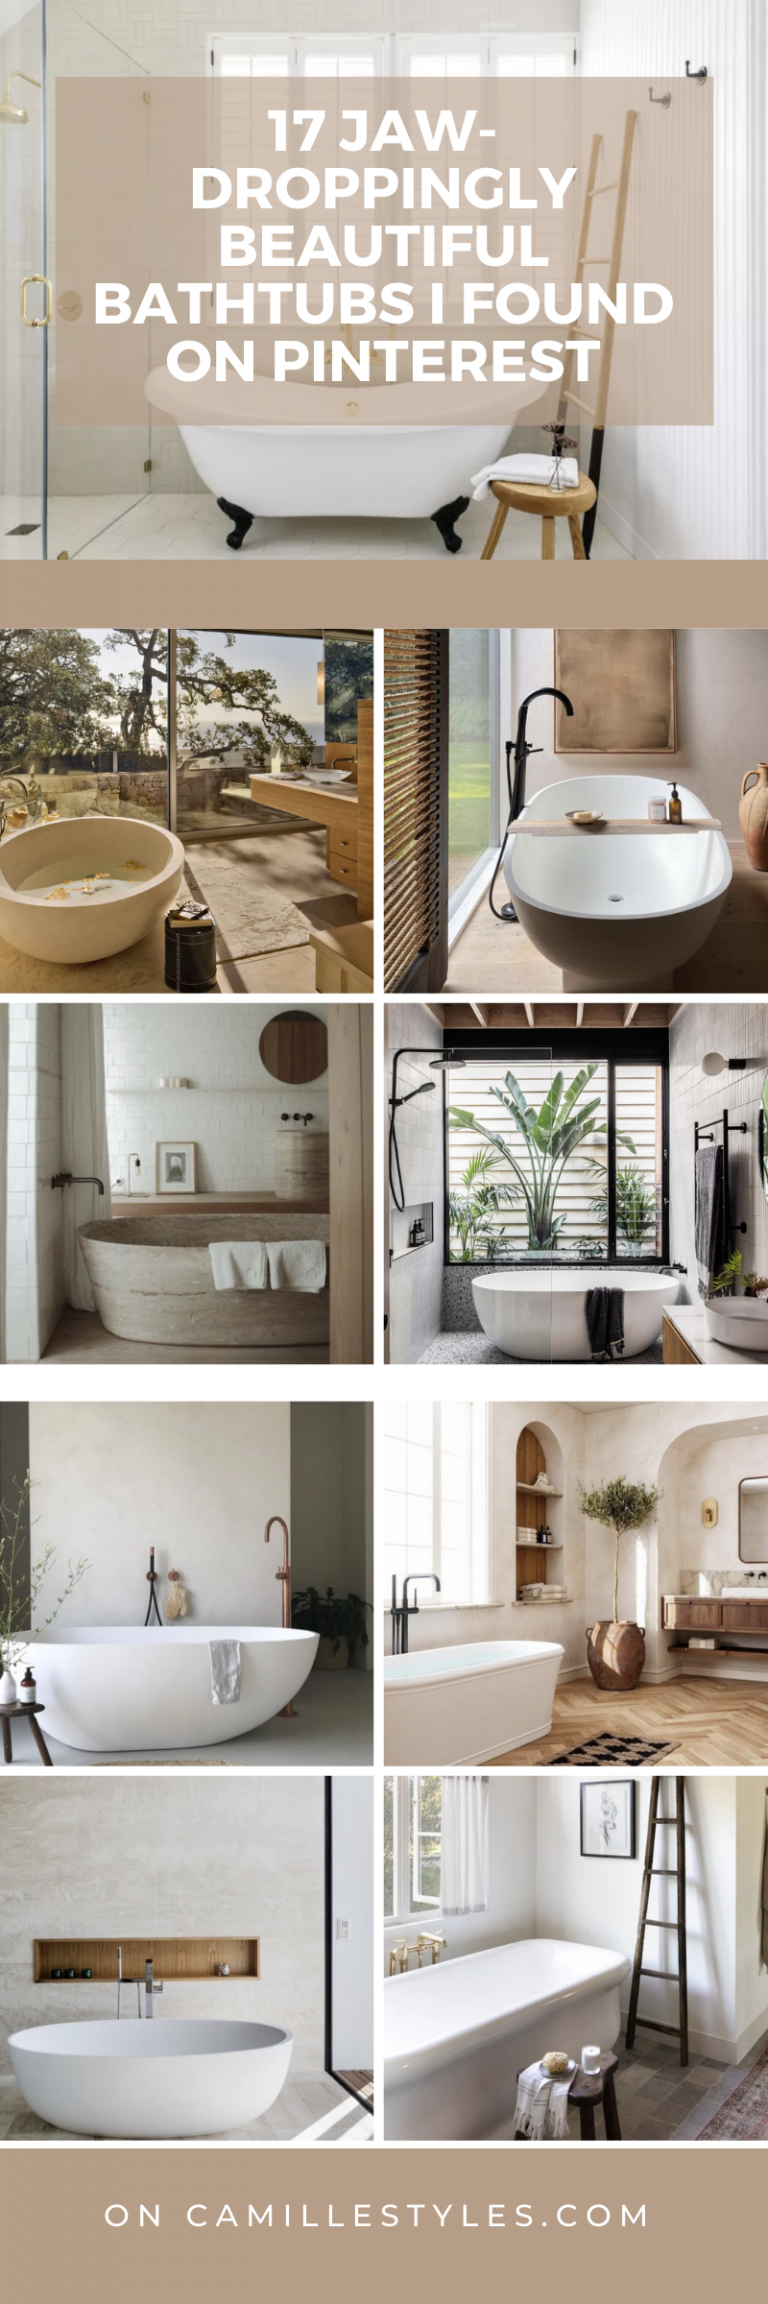 The 17 Most Beautiful Bathtubs on Pinterest Channel Spa Vibes at Home